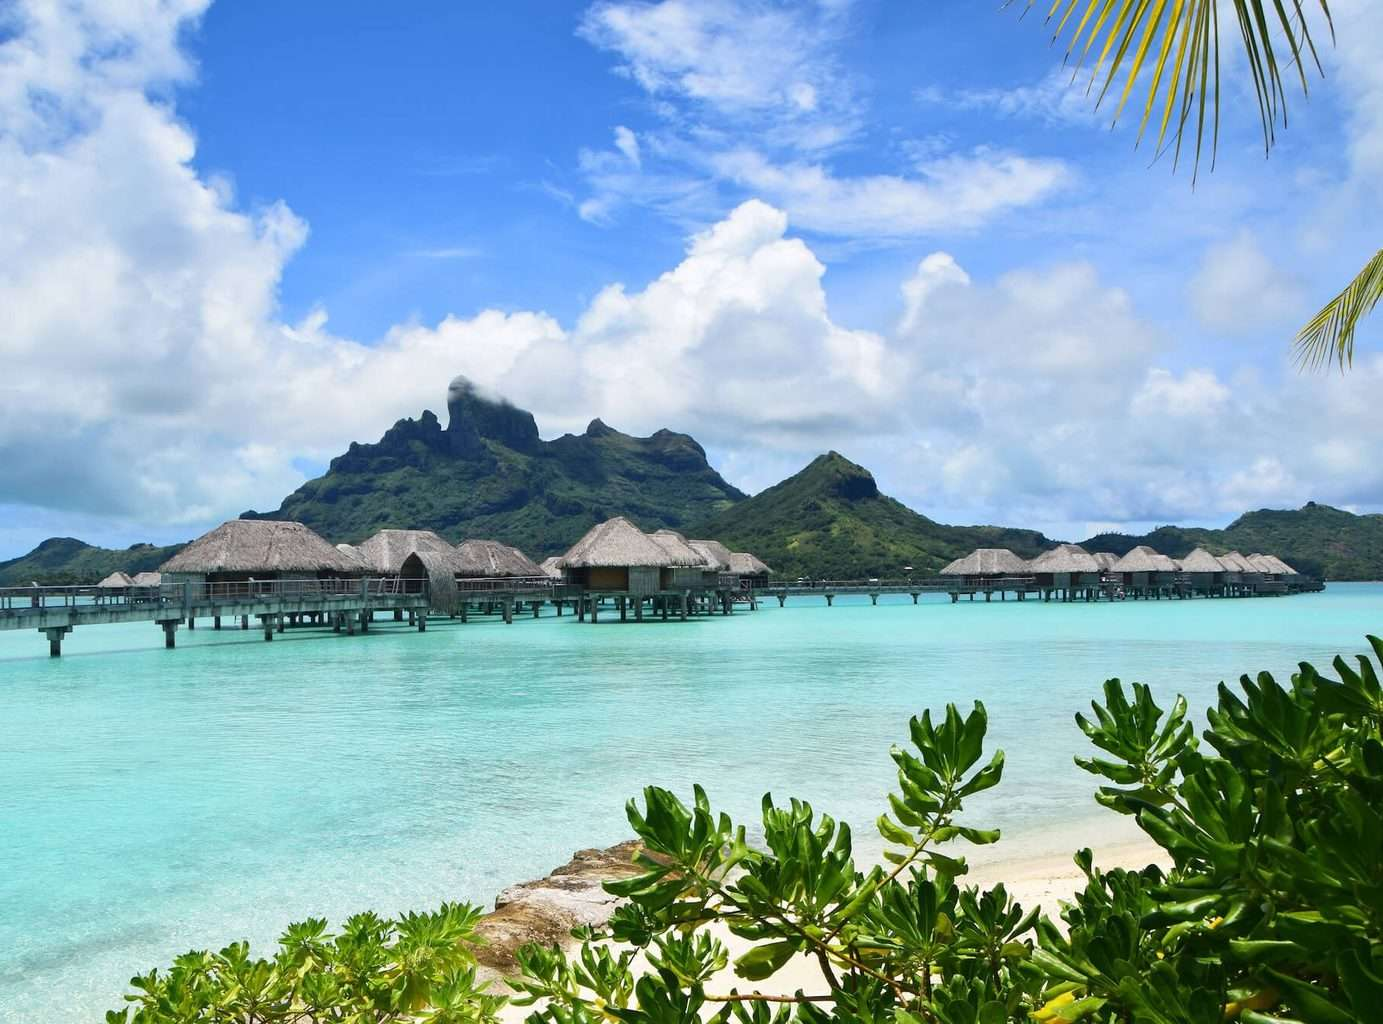 luxury Bora Bora holidays - overwater bungalows and ocean view